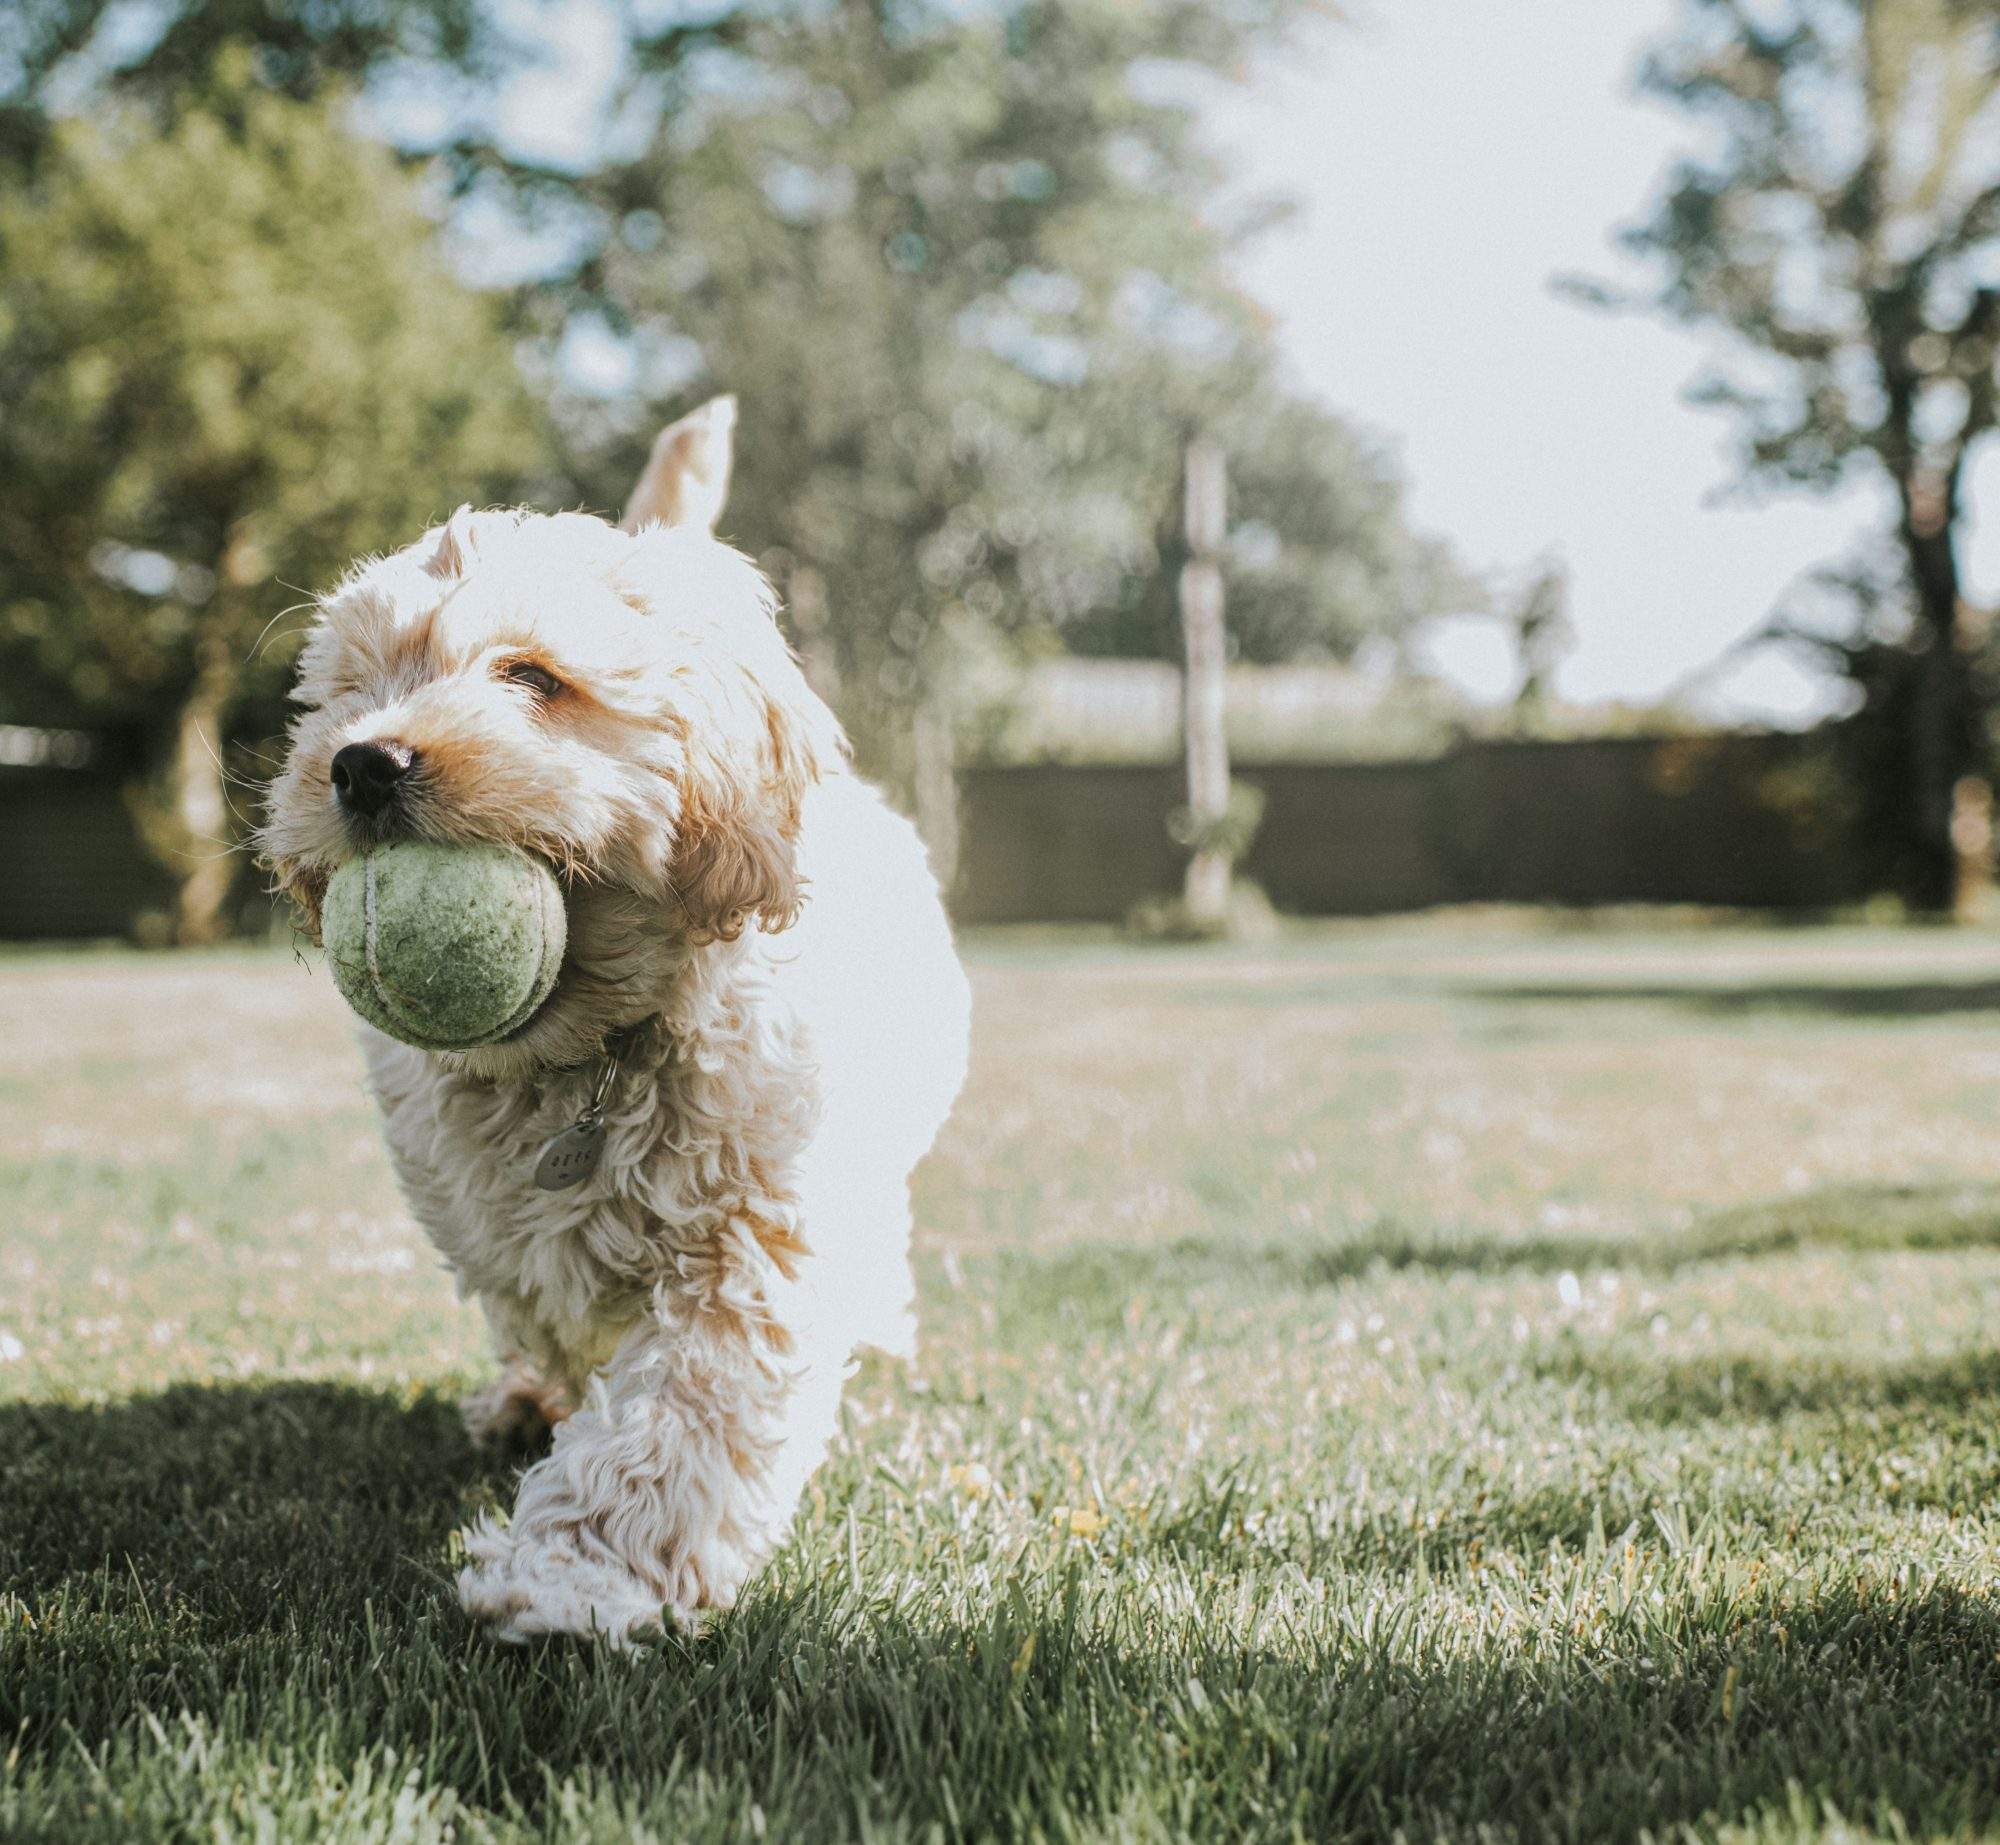 Cockapoo Puppy Running in Grass with Ball in His Mouth